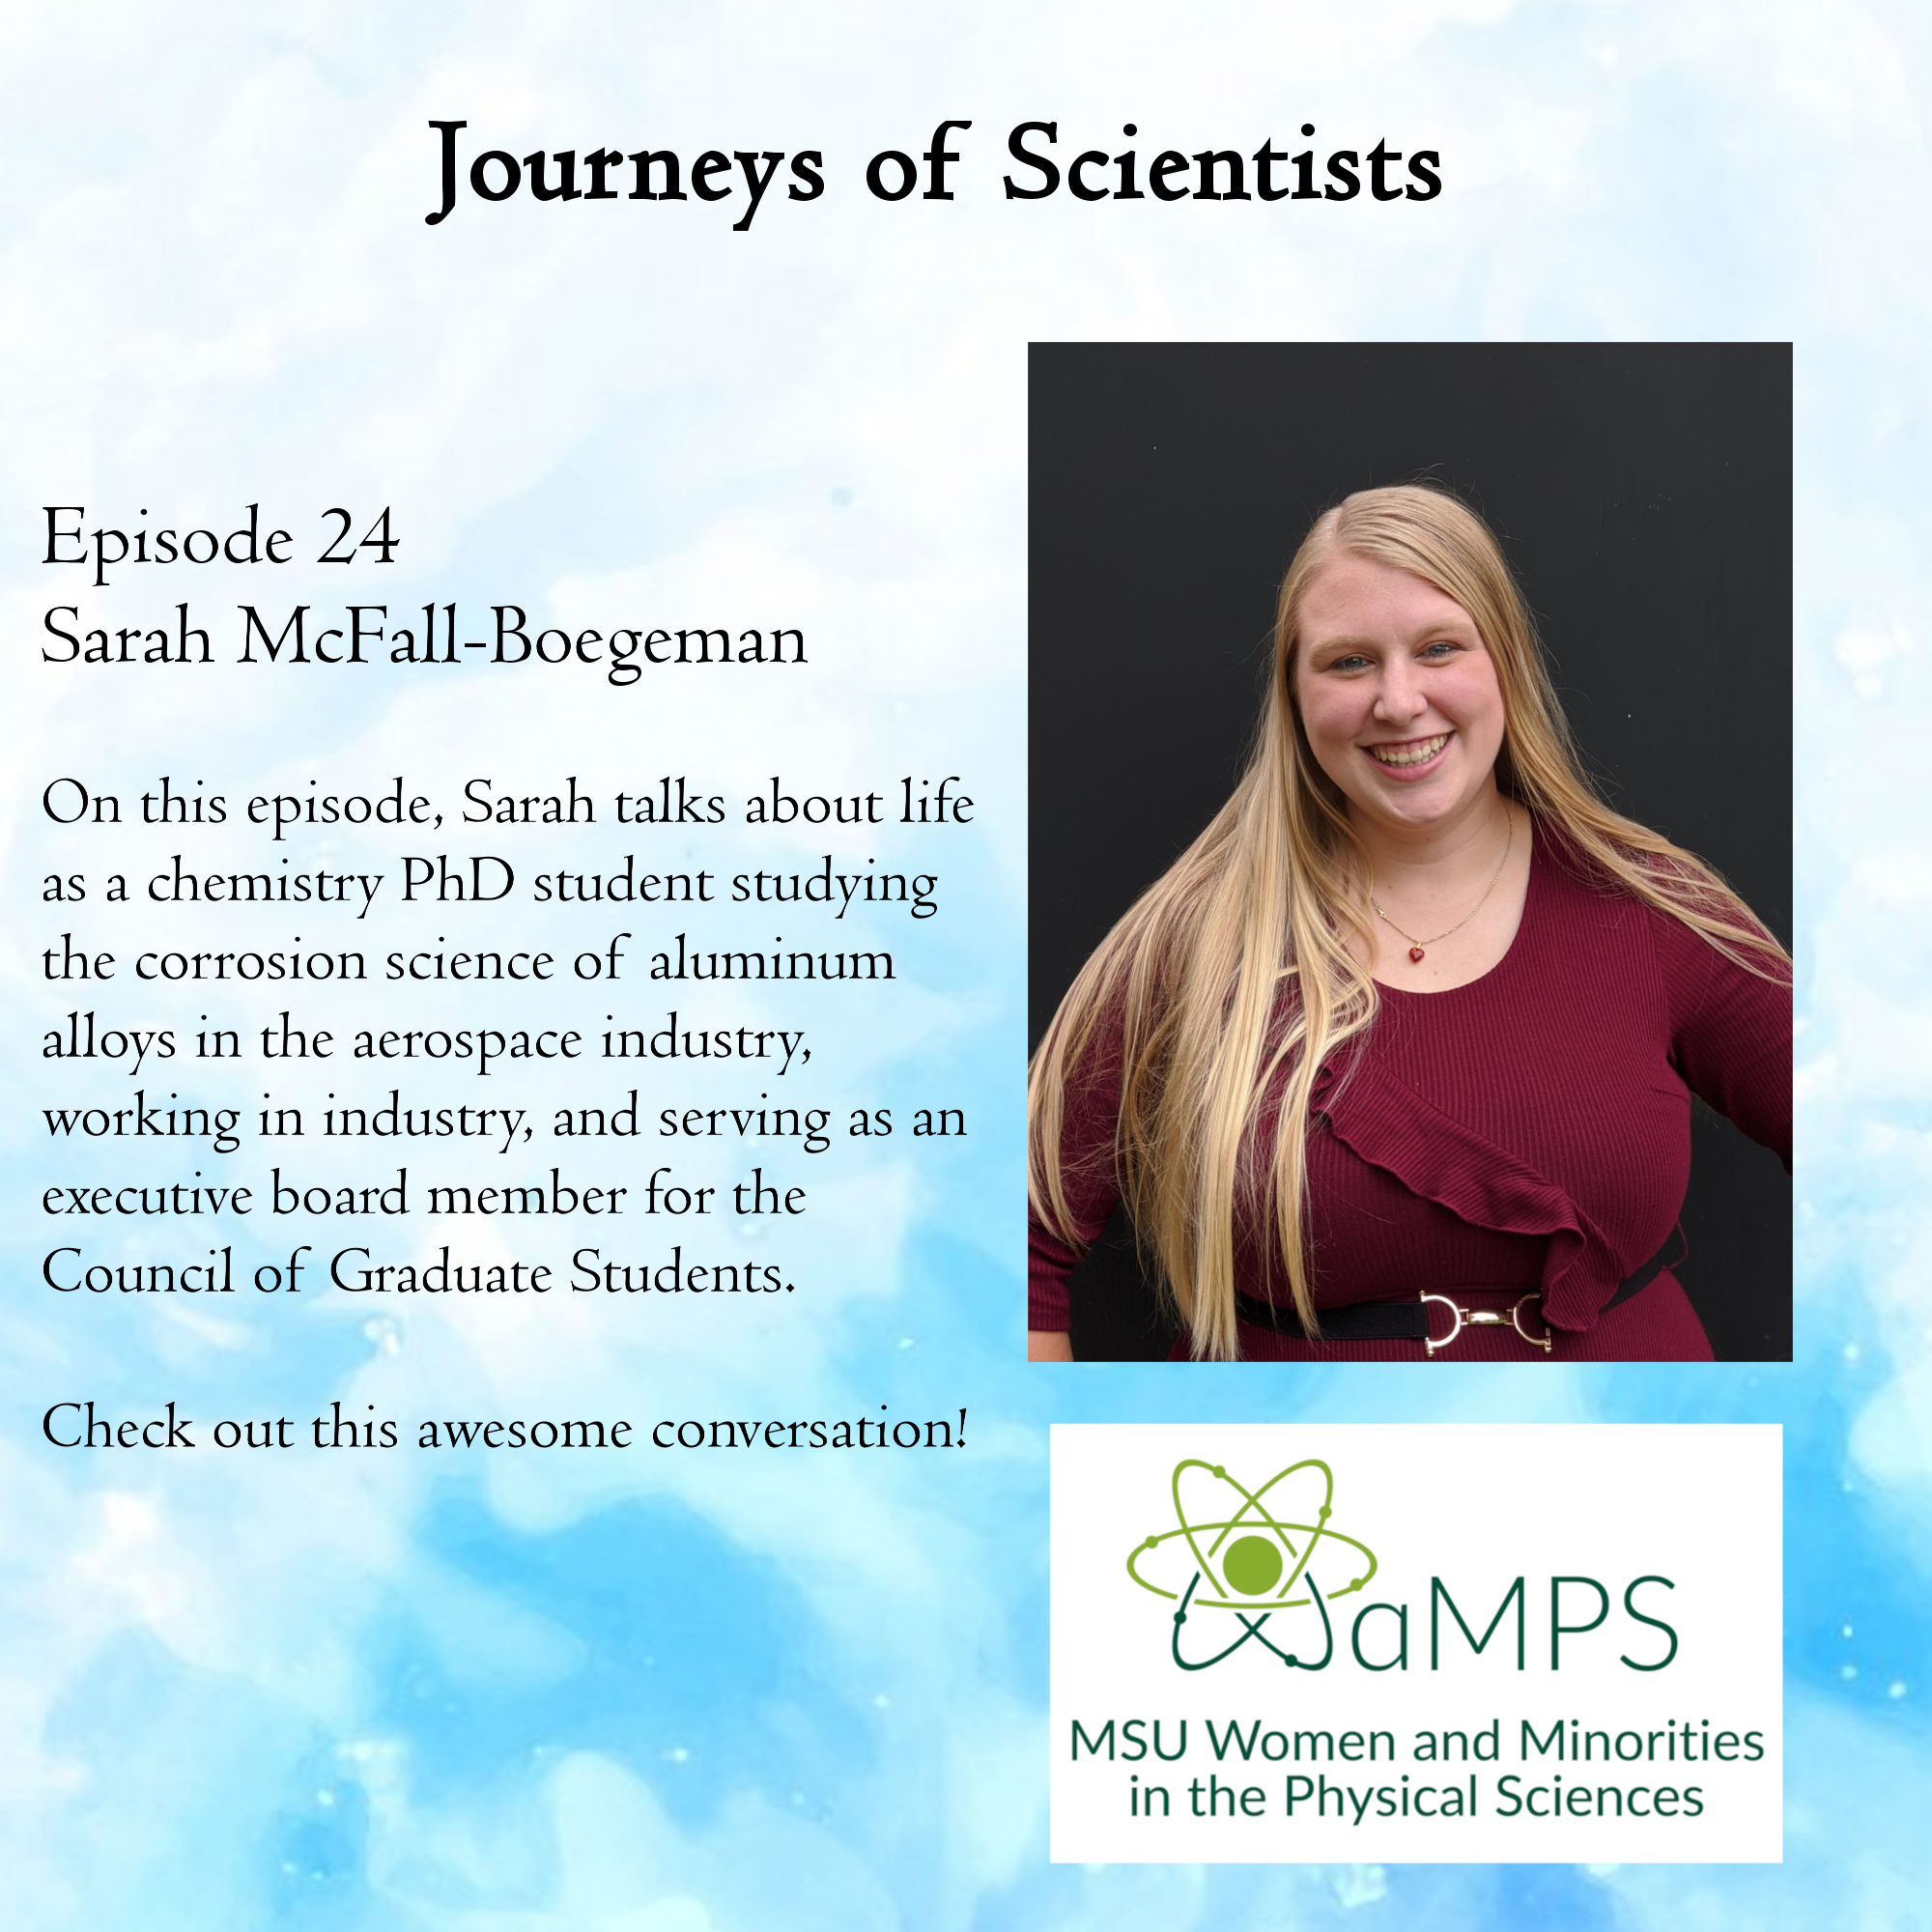 Sarah McFall-Boegeman is a 4th year chemistry PhD student whose work is focused on the corrosion science of aluminum alloys in the aerospace industry. She also serves as the Recording Secretary for the Council of Graduate Students (COGS) at MSU, which more information about can be found at https://cogs.msu.edu/